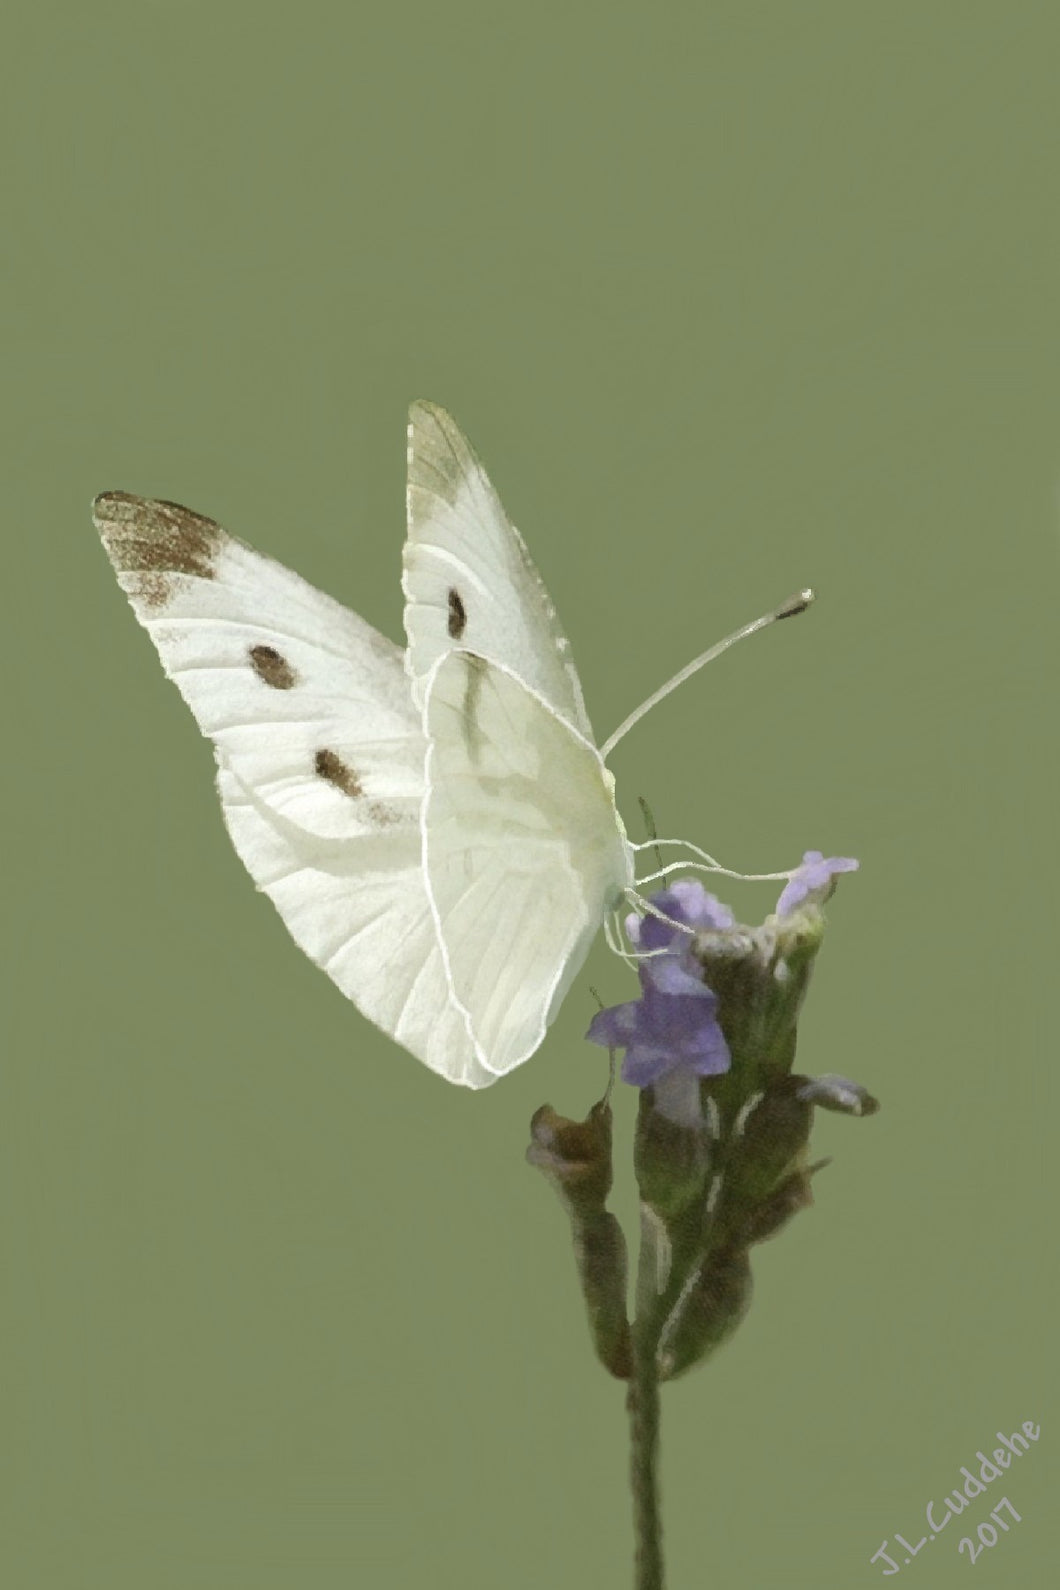 White cabbage butterfly on Lavender print by Judy Link Cuddehe for Found Link Press..